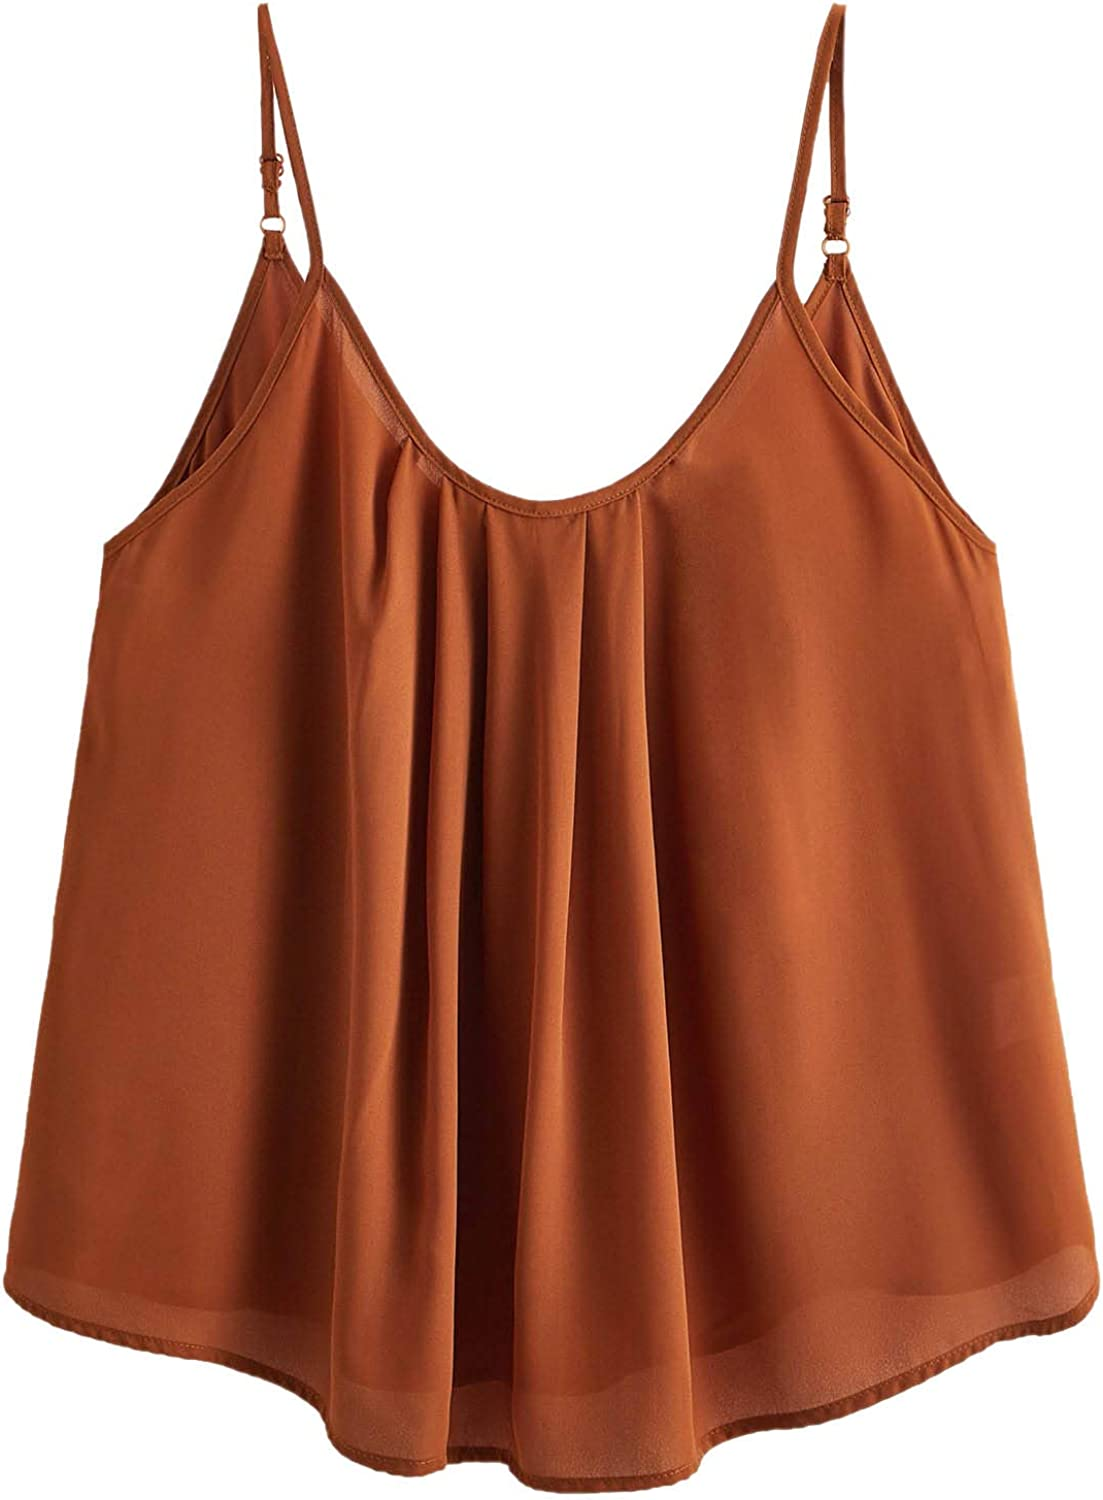 Romwe Women's Plus Size Casual Cami Tank Spaghetti Strap Camisole Pleated Scoop Neck Sleeveless Tops